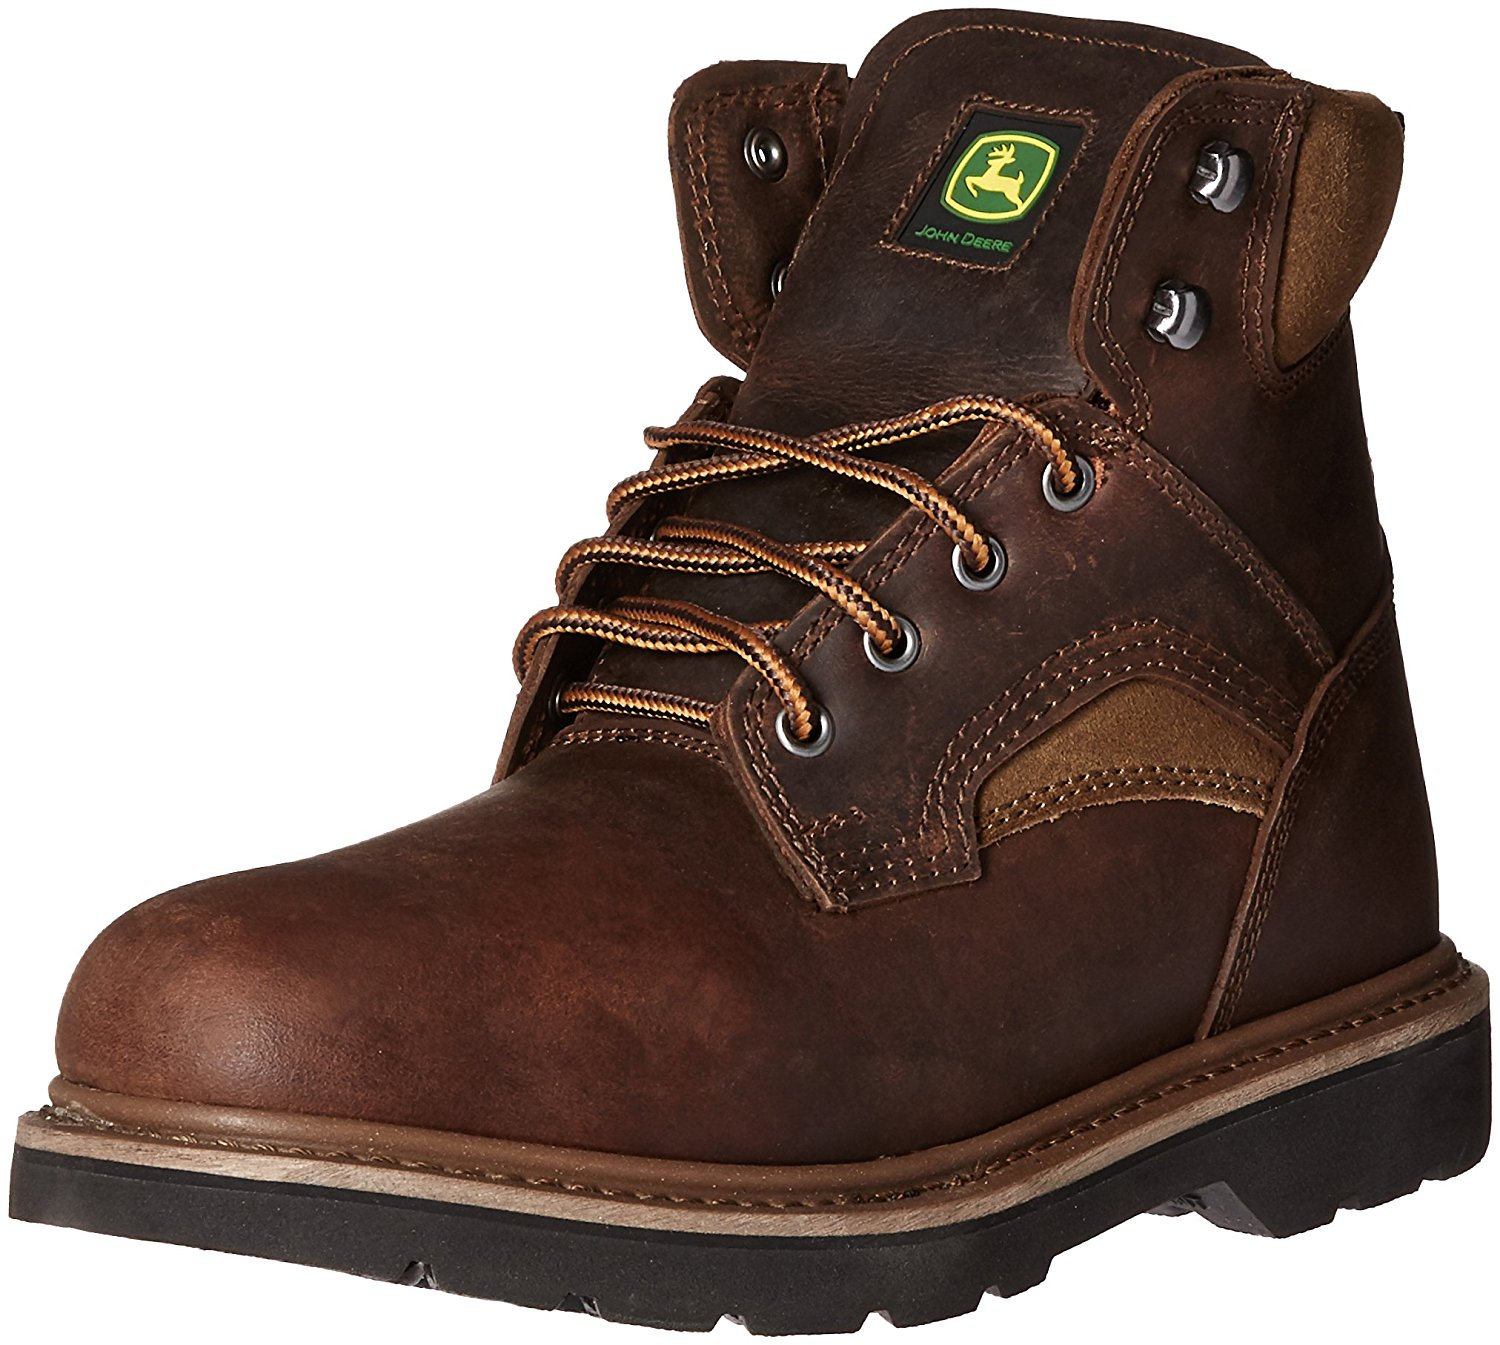 John Deere Men's 6'' All Around Round Toe Lace Up Work Boots Brown Leather 7 W by John Deere